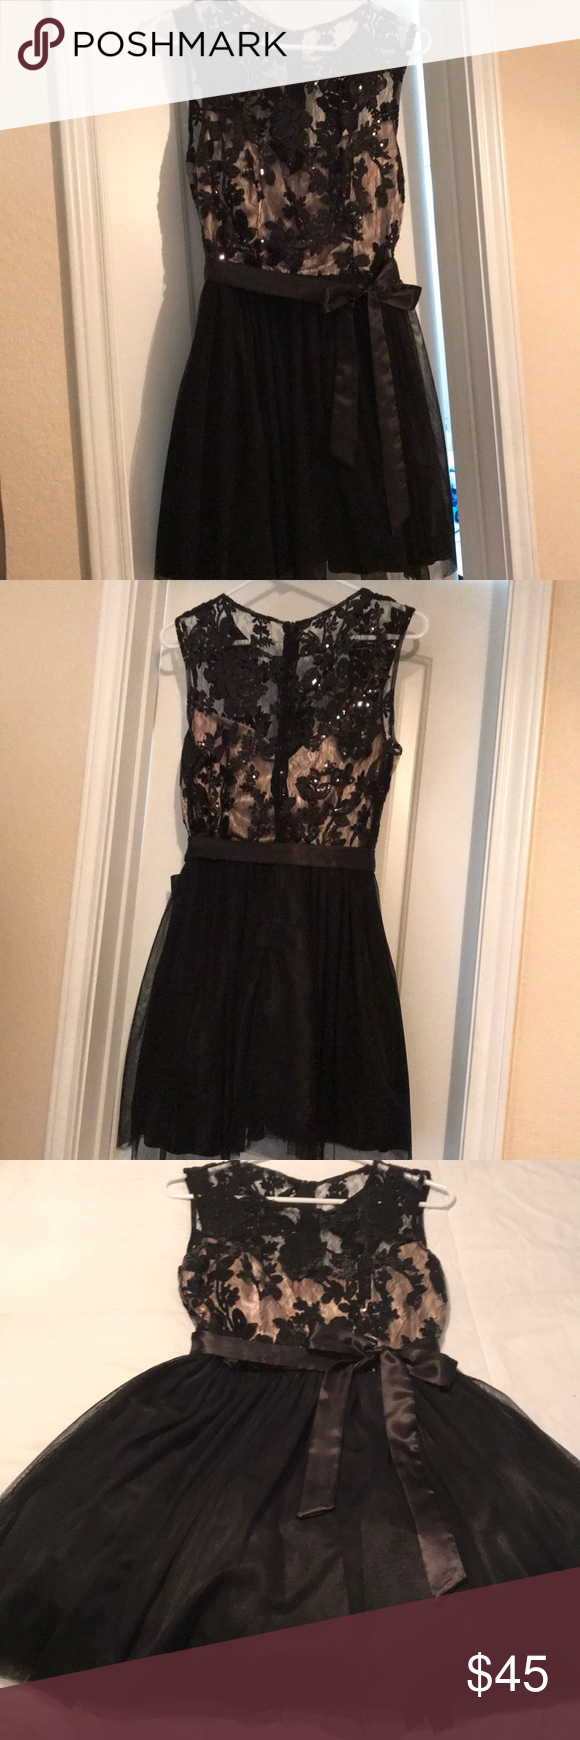 B darlin black lace dress  B DARlIN Fit and flare dress  Heart shapes Sequins and Nude